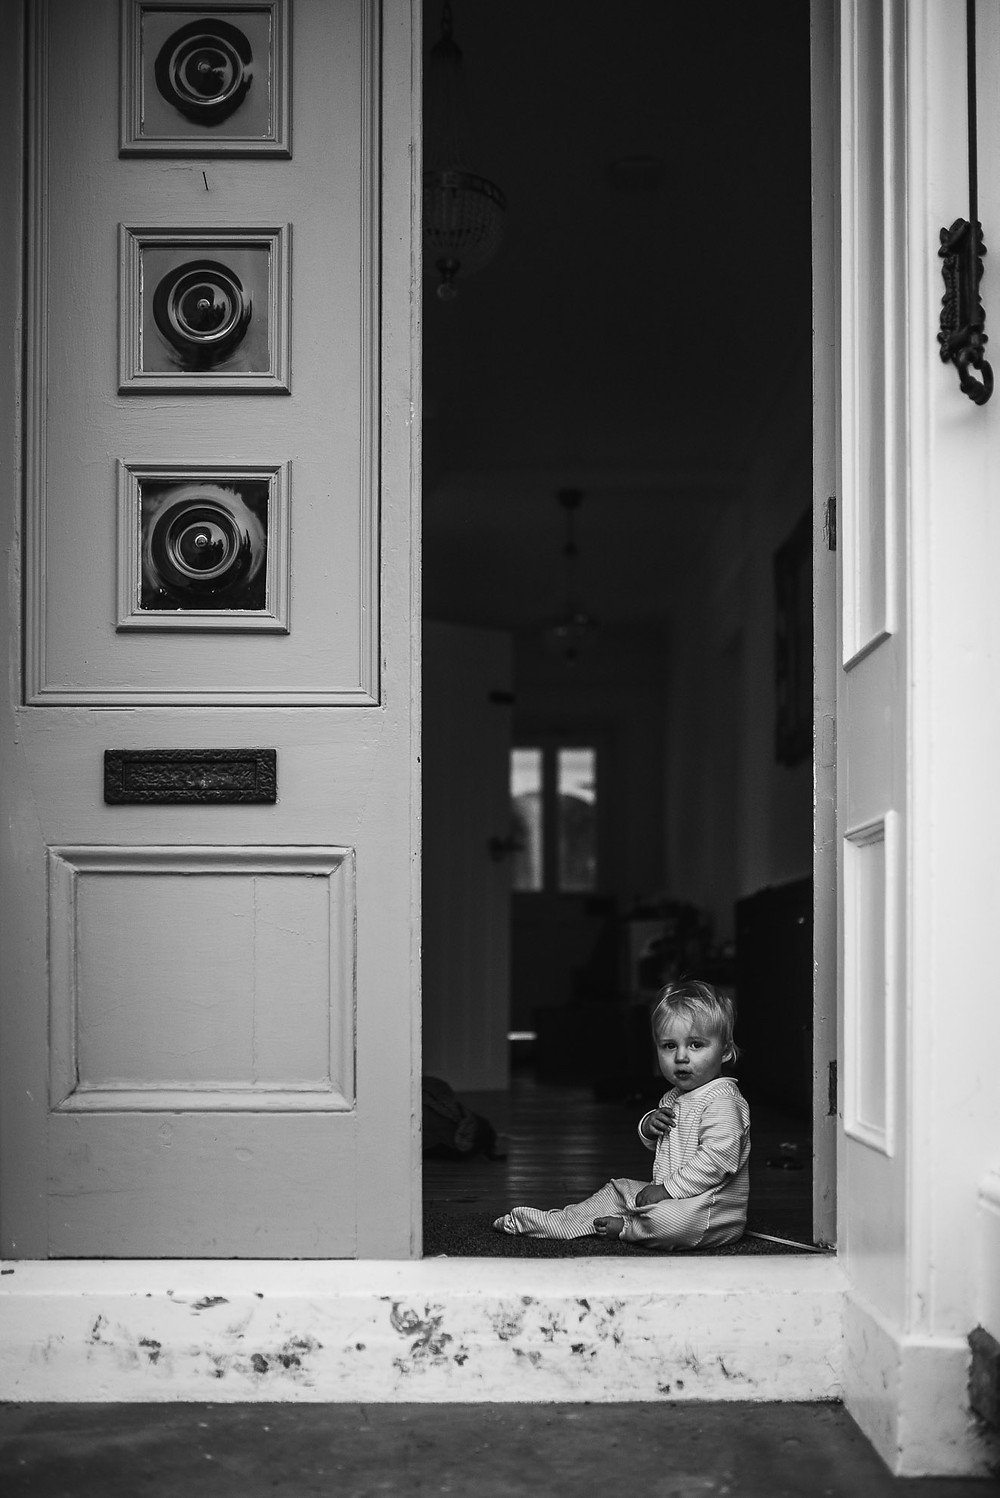 baby sitting inside his front door on a muddy doorstep in black & white